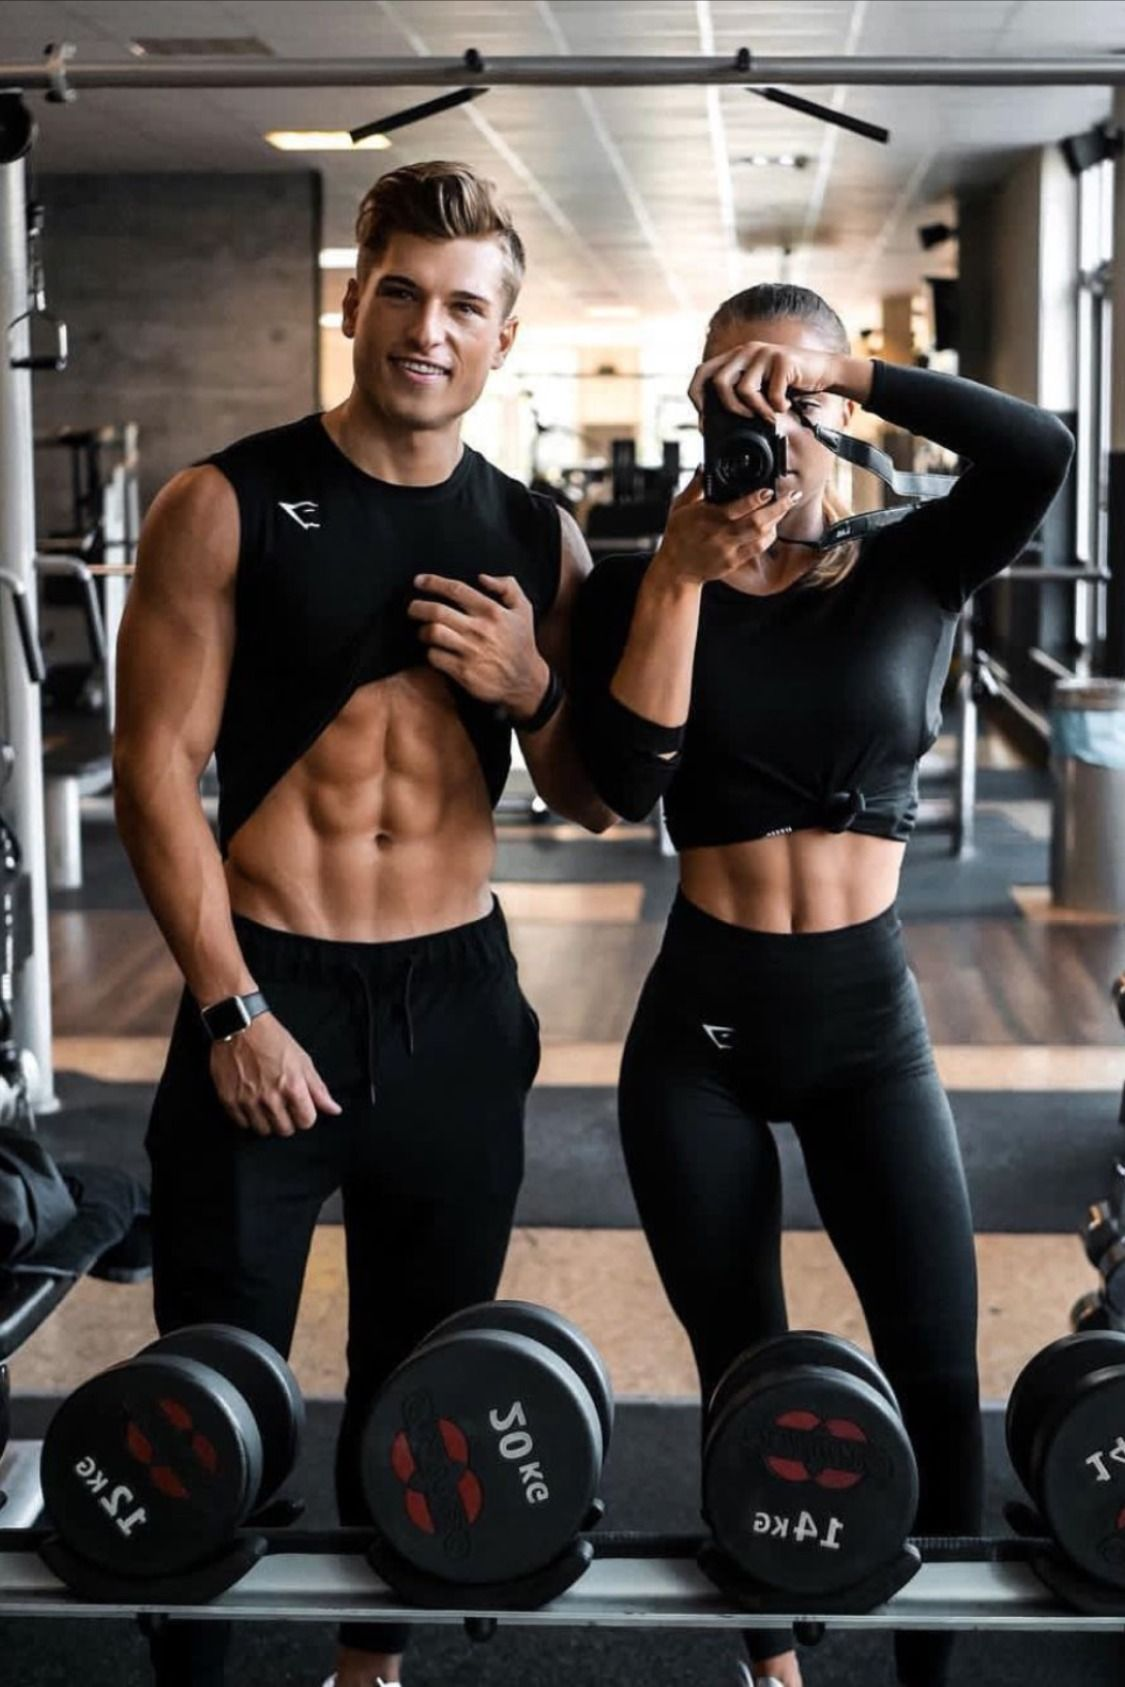 Experts Say Fit Couples That Are Active Together Stay Together - Here's Why